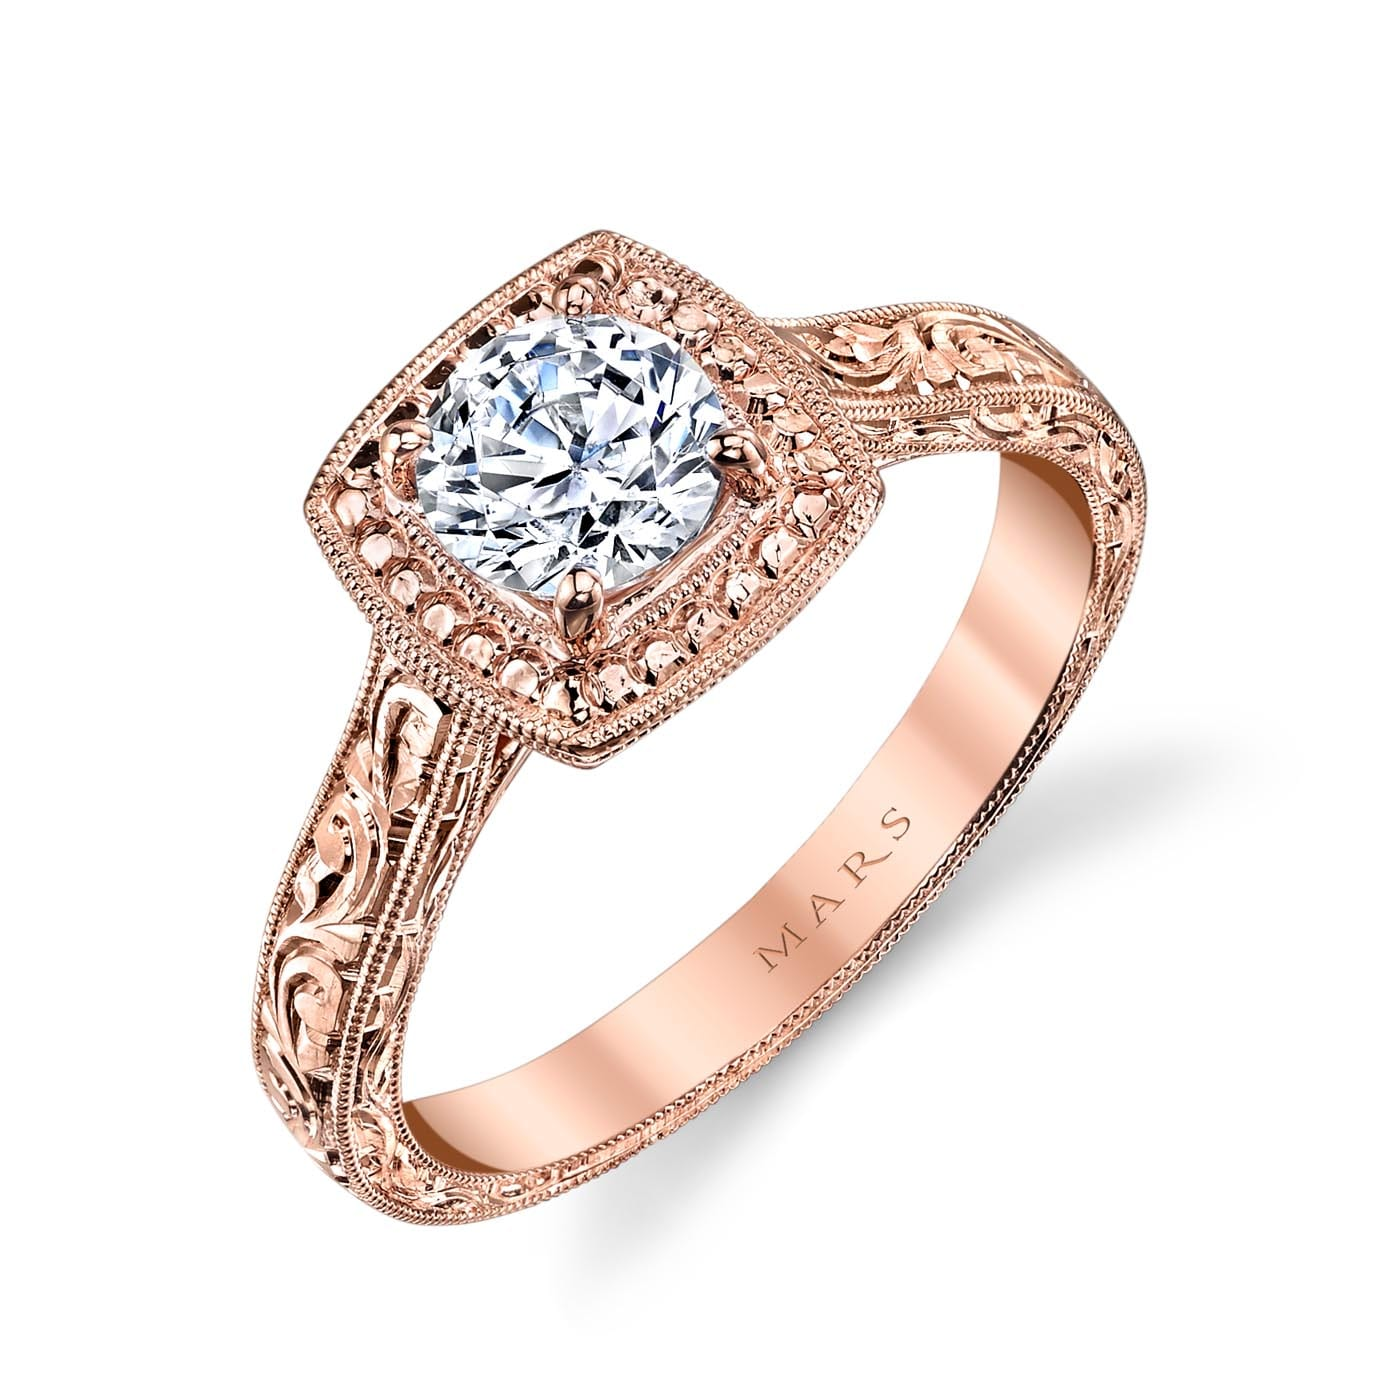 Halo Engagement RingStyle #: MARS 14762HE